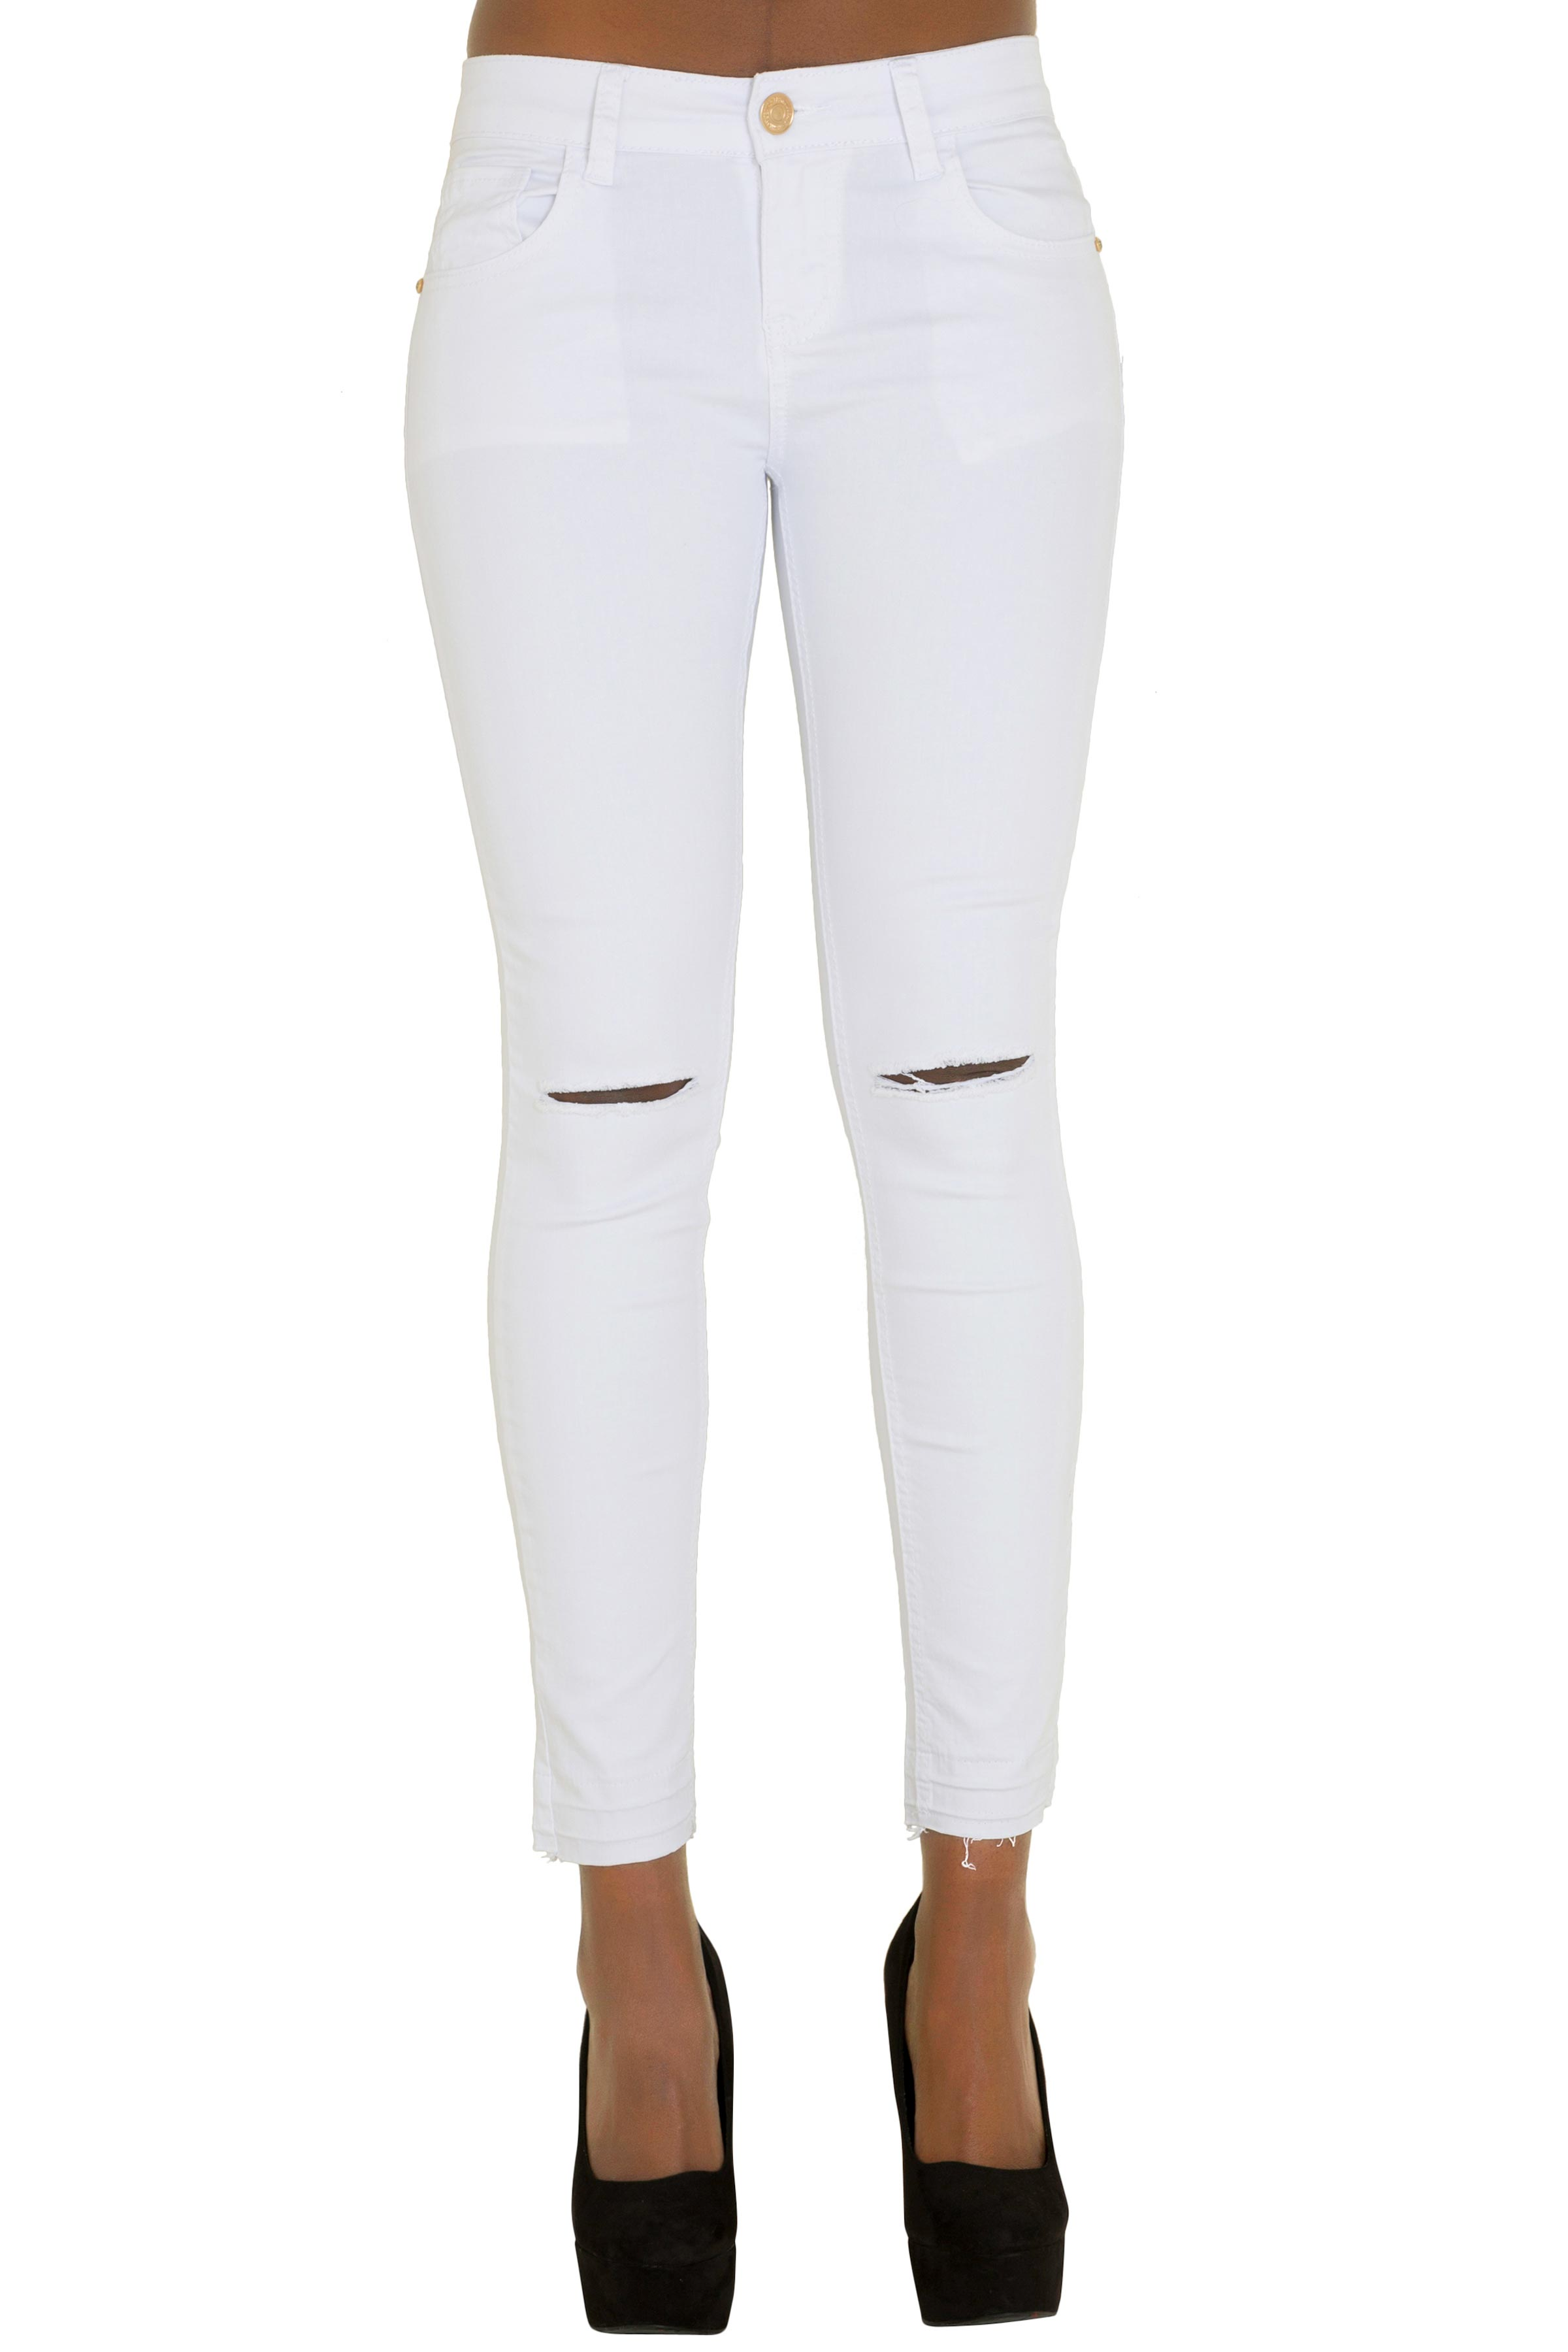 WOMENS WHITE RIPPED KNEE CUT JEANS LADIES SLIM FIT SKINNY DENIM ...